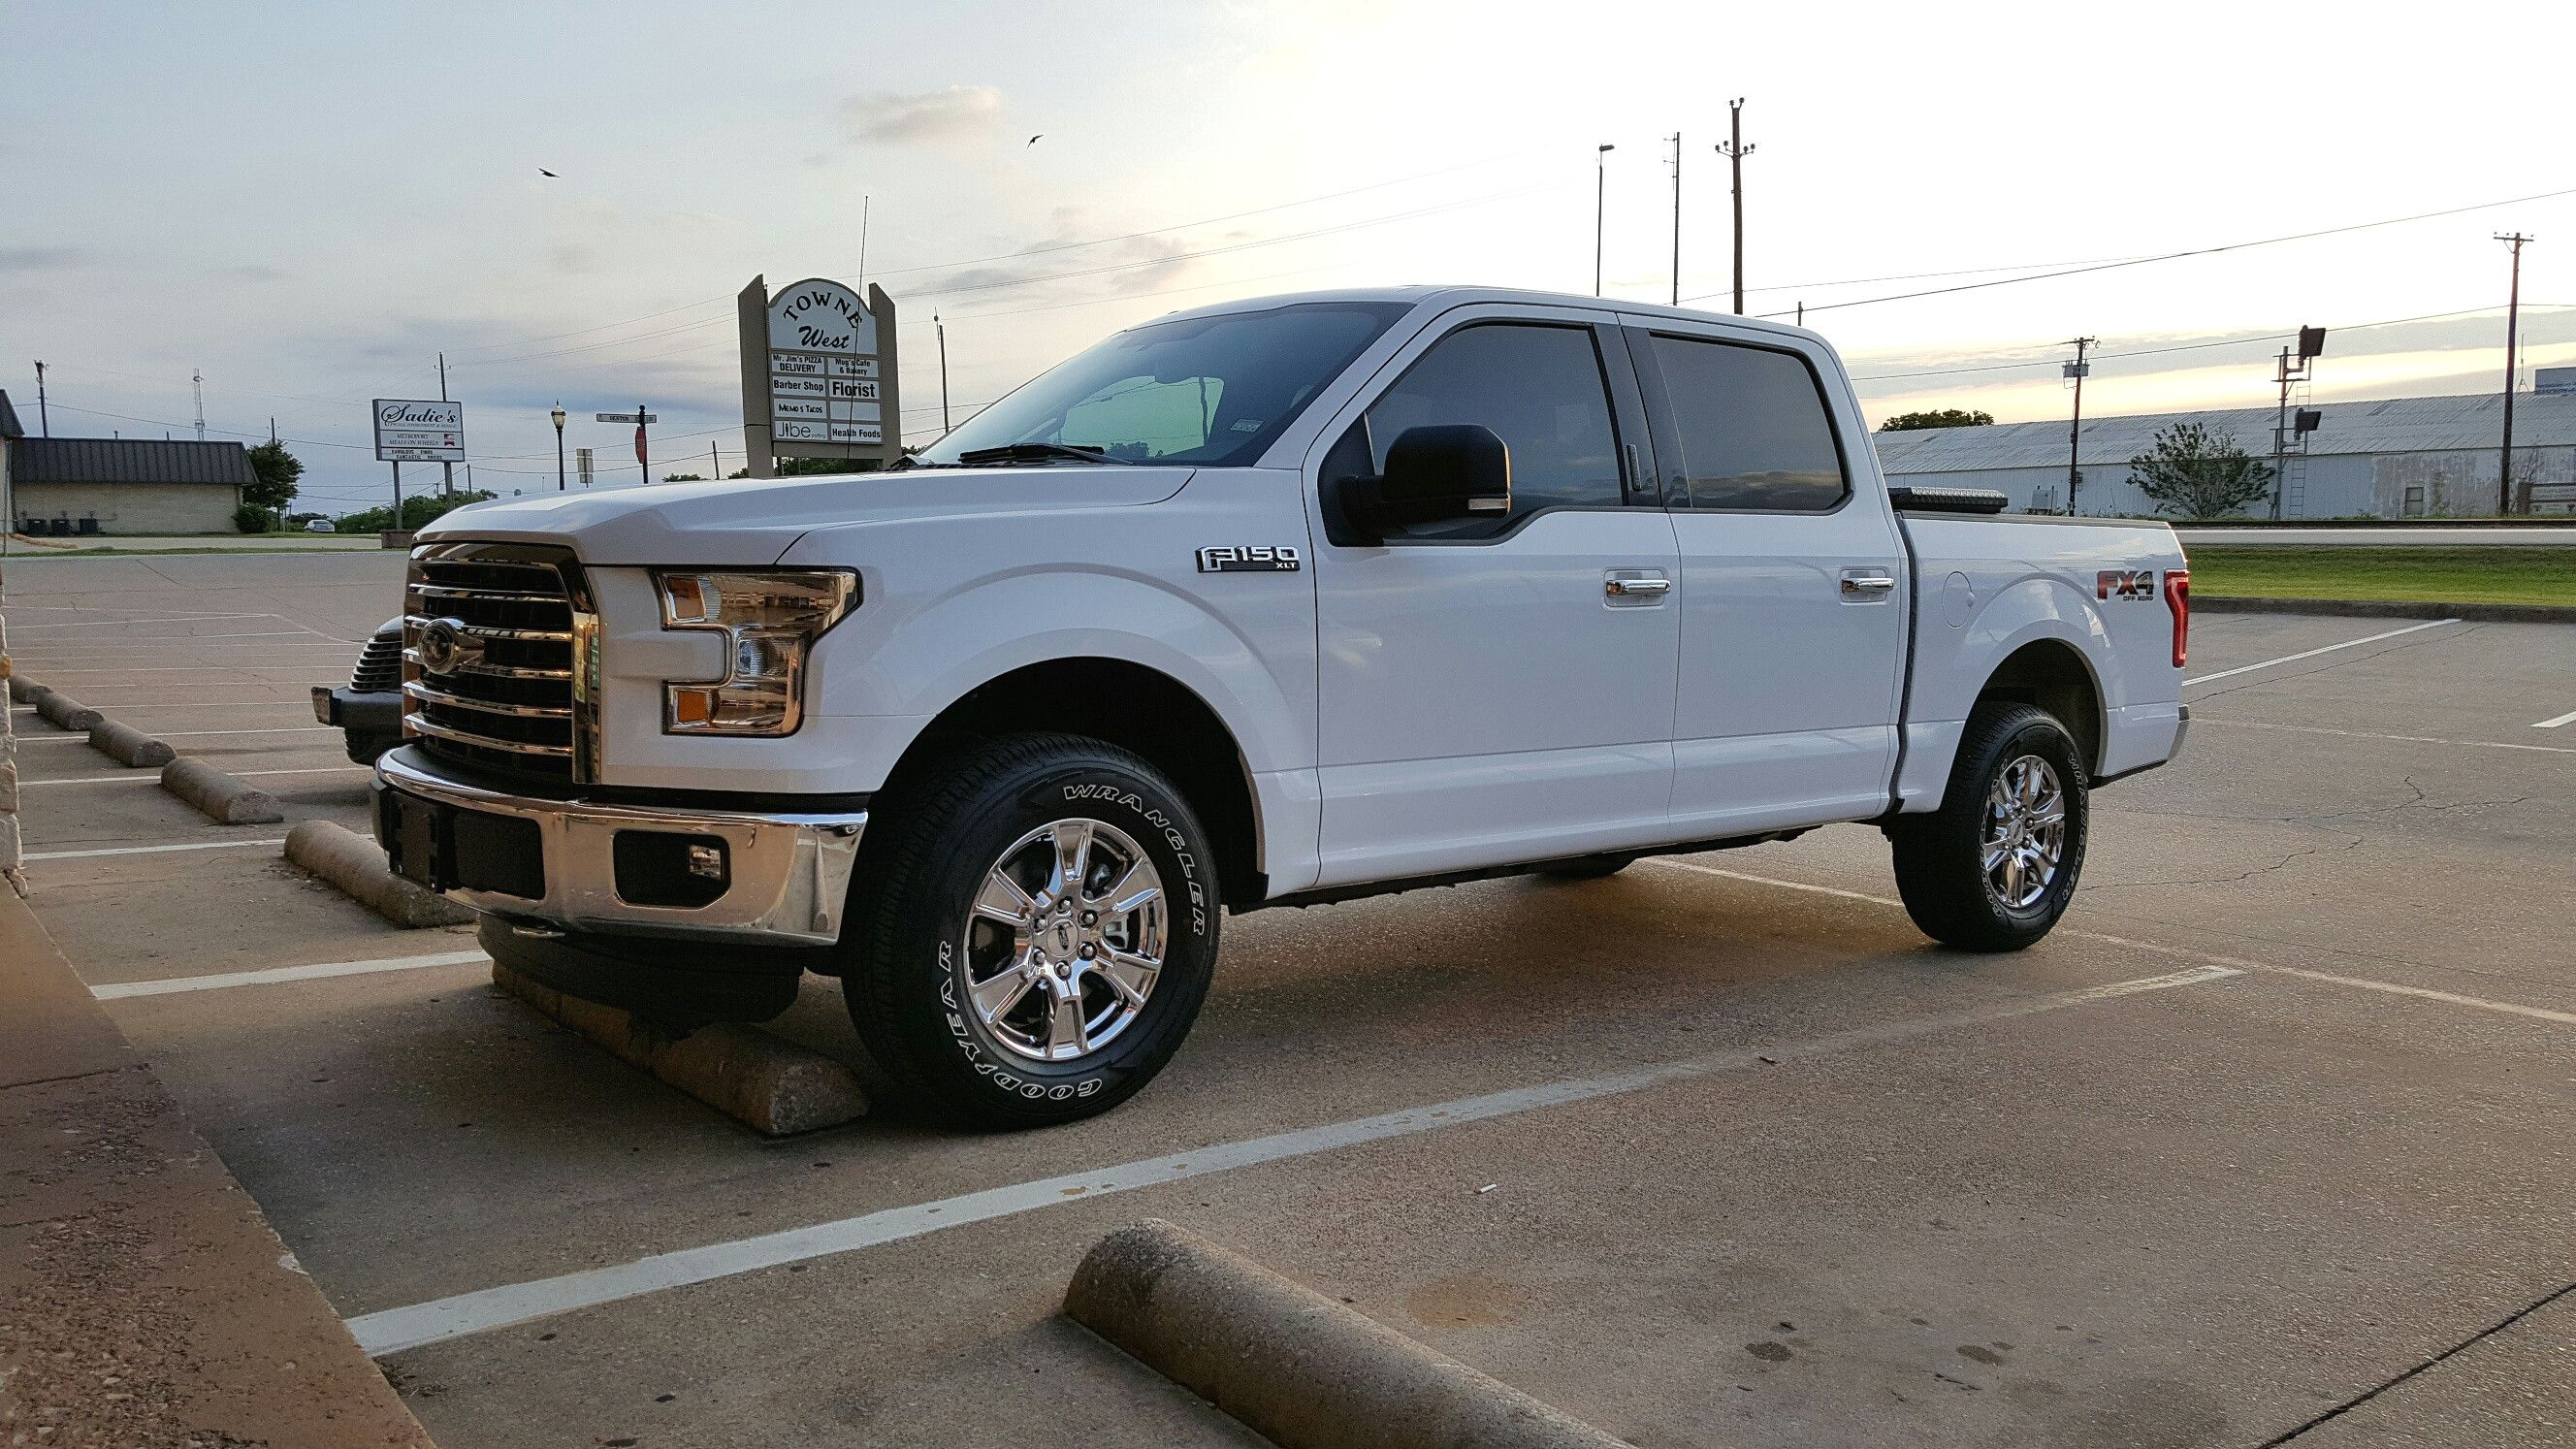 2 5 Leveling Kit Vs 4 Suspension Lift With Factory 20 S Ford With 2 In Leveling  Kit And 2 5 Leveling Kit Vs 4 Suspension Lift Factory 20s F150 No Steps On  ...